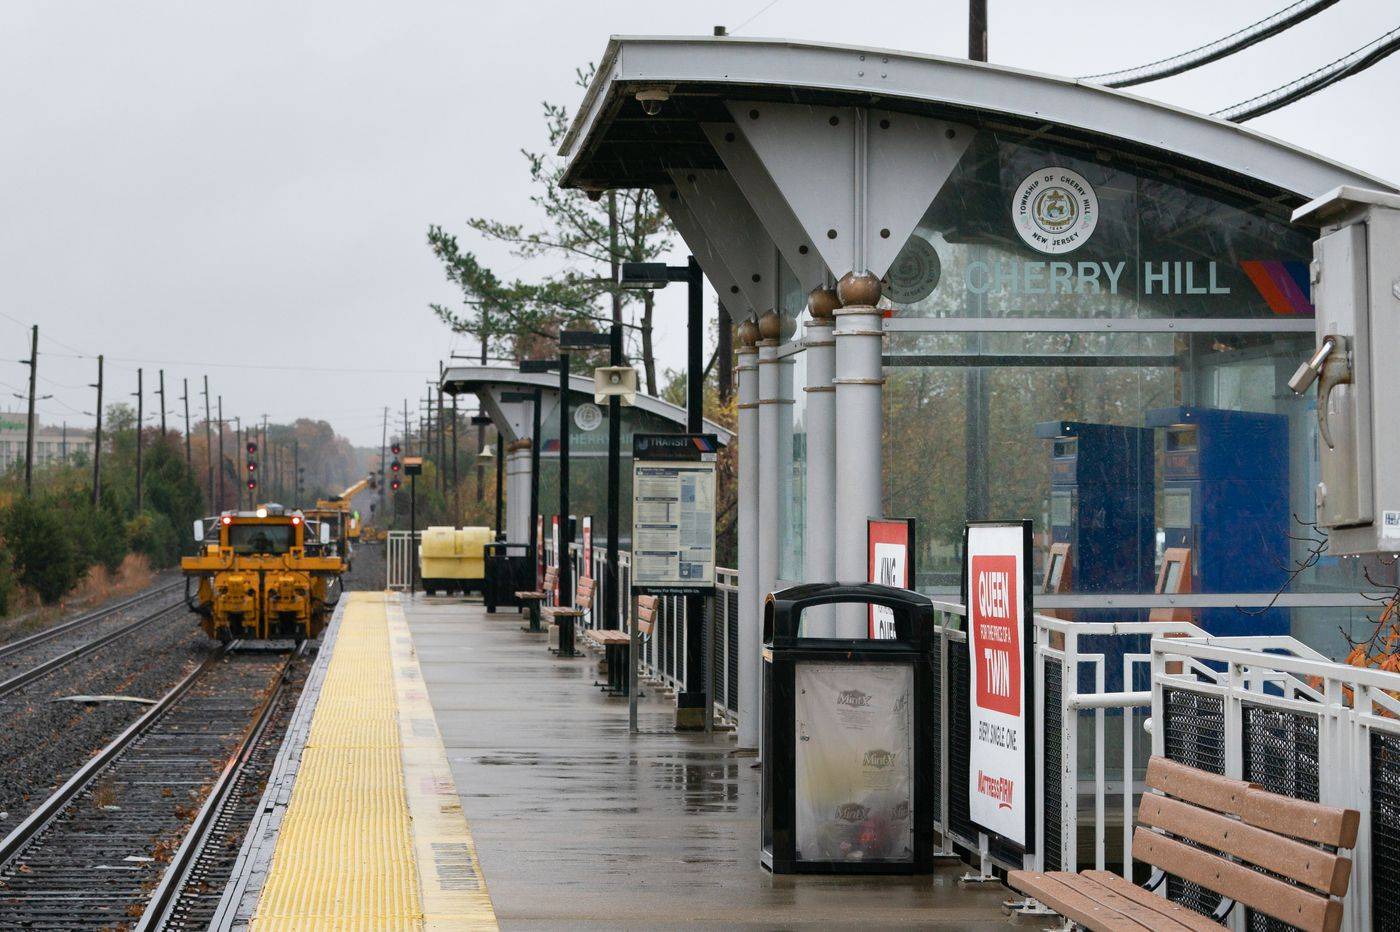 Cherry Hill's little-known train stop seen as a potentially big link to Philly